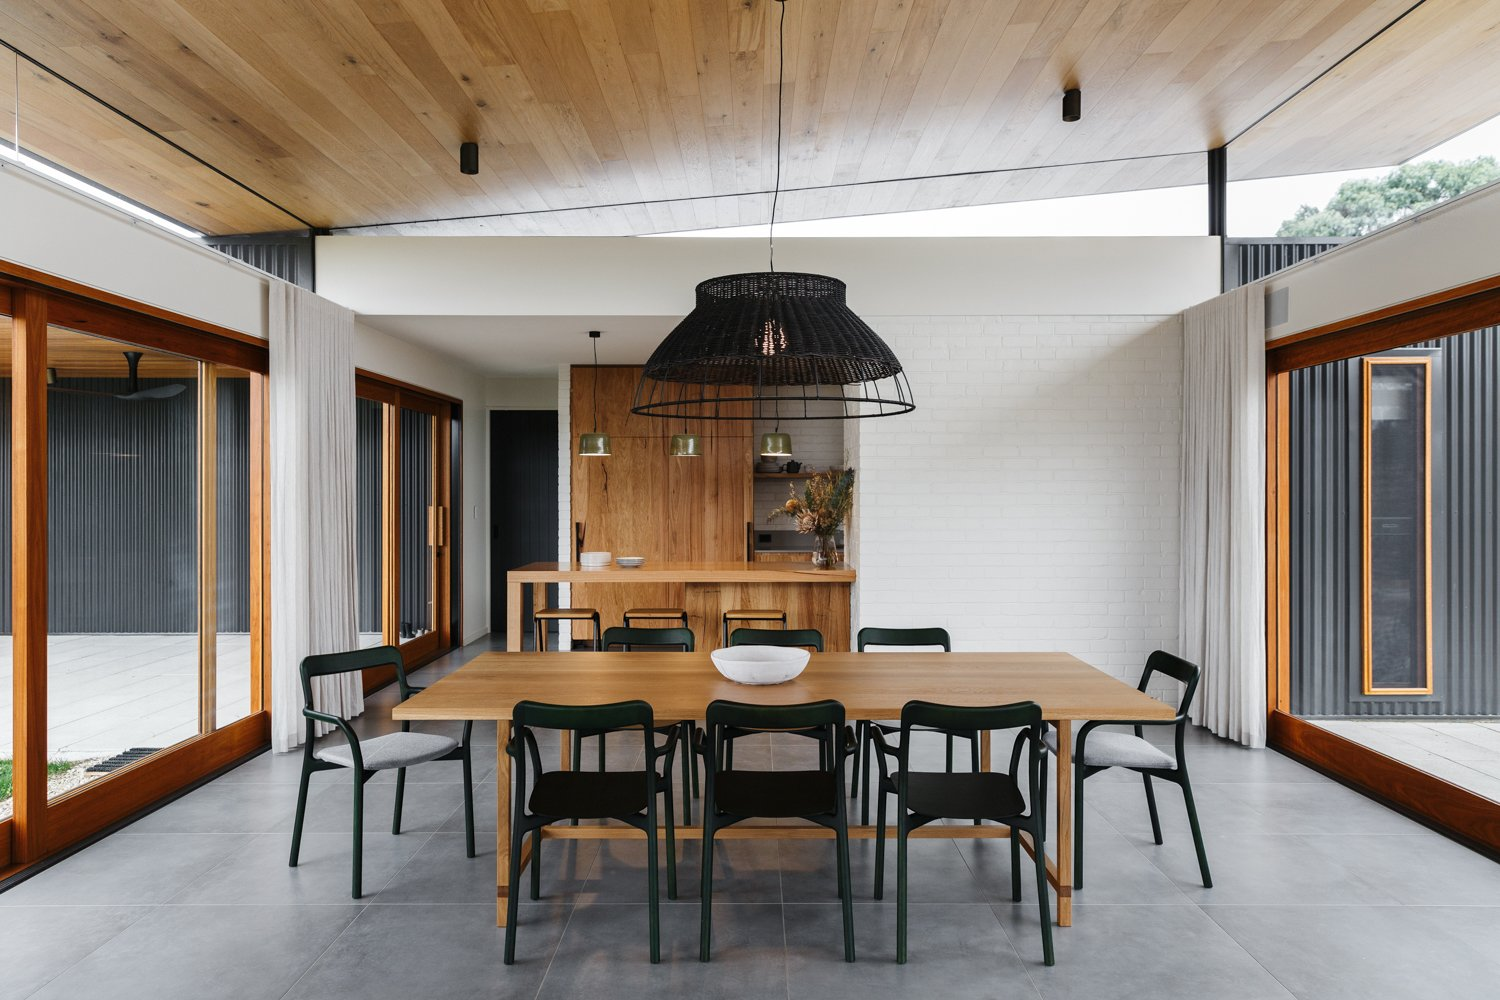 Dining Room, Chair, Table, and Pendant Lighting  Photo 1 of 11 in The Surrounding Countryside Inspires a Family Home in Australia's Adelaide Hills